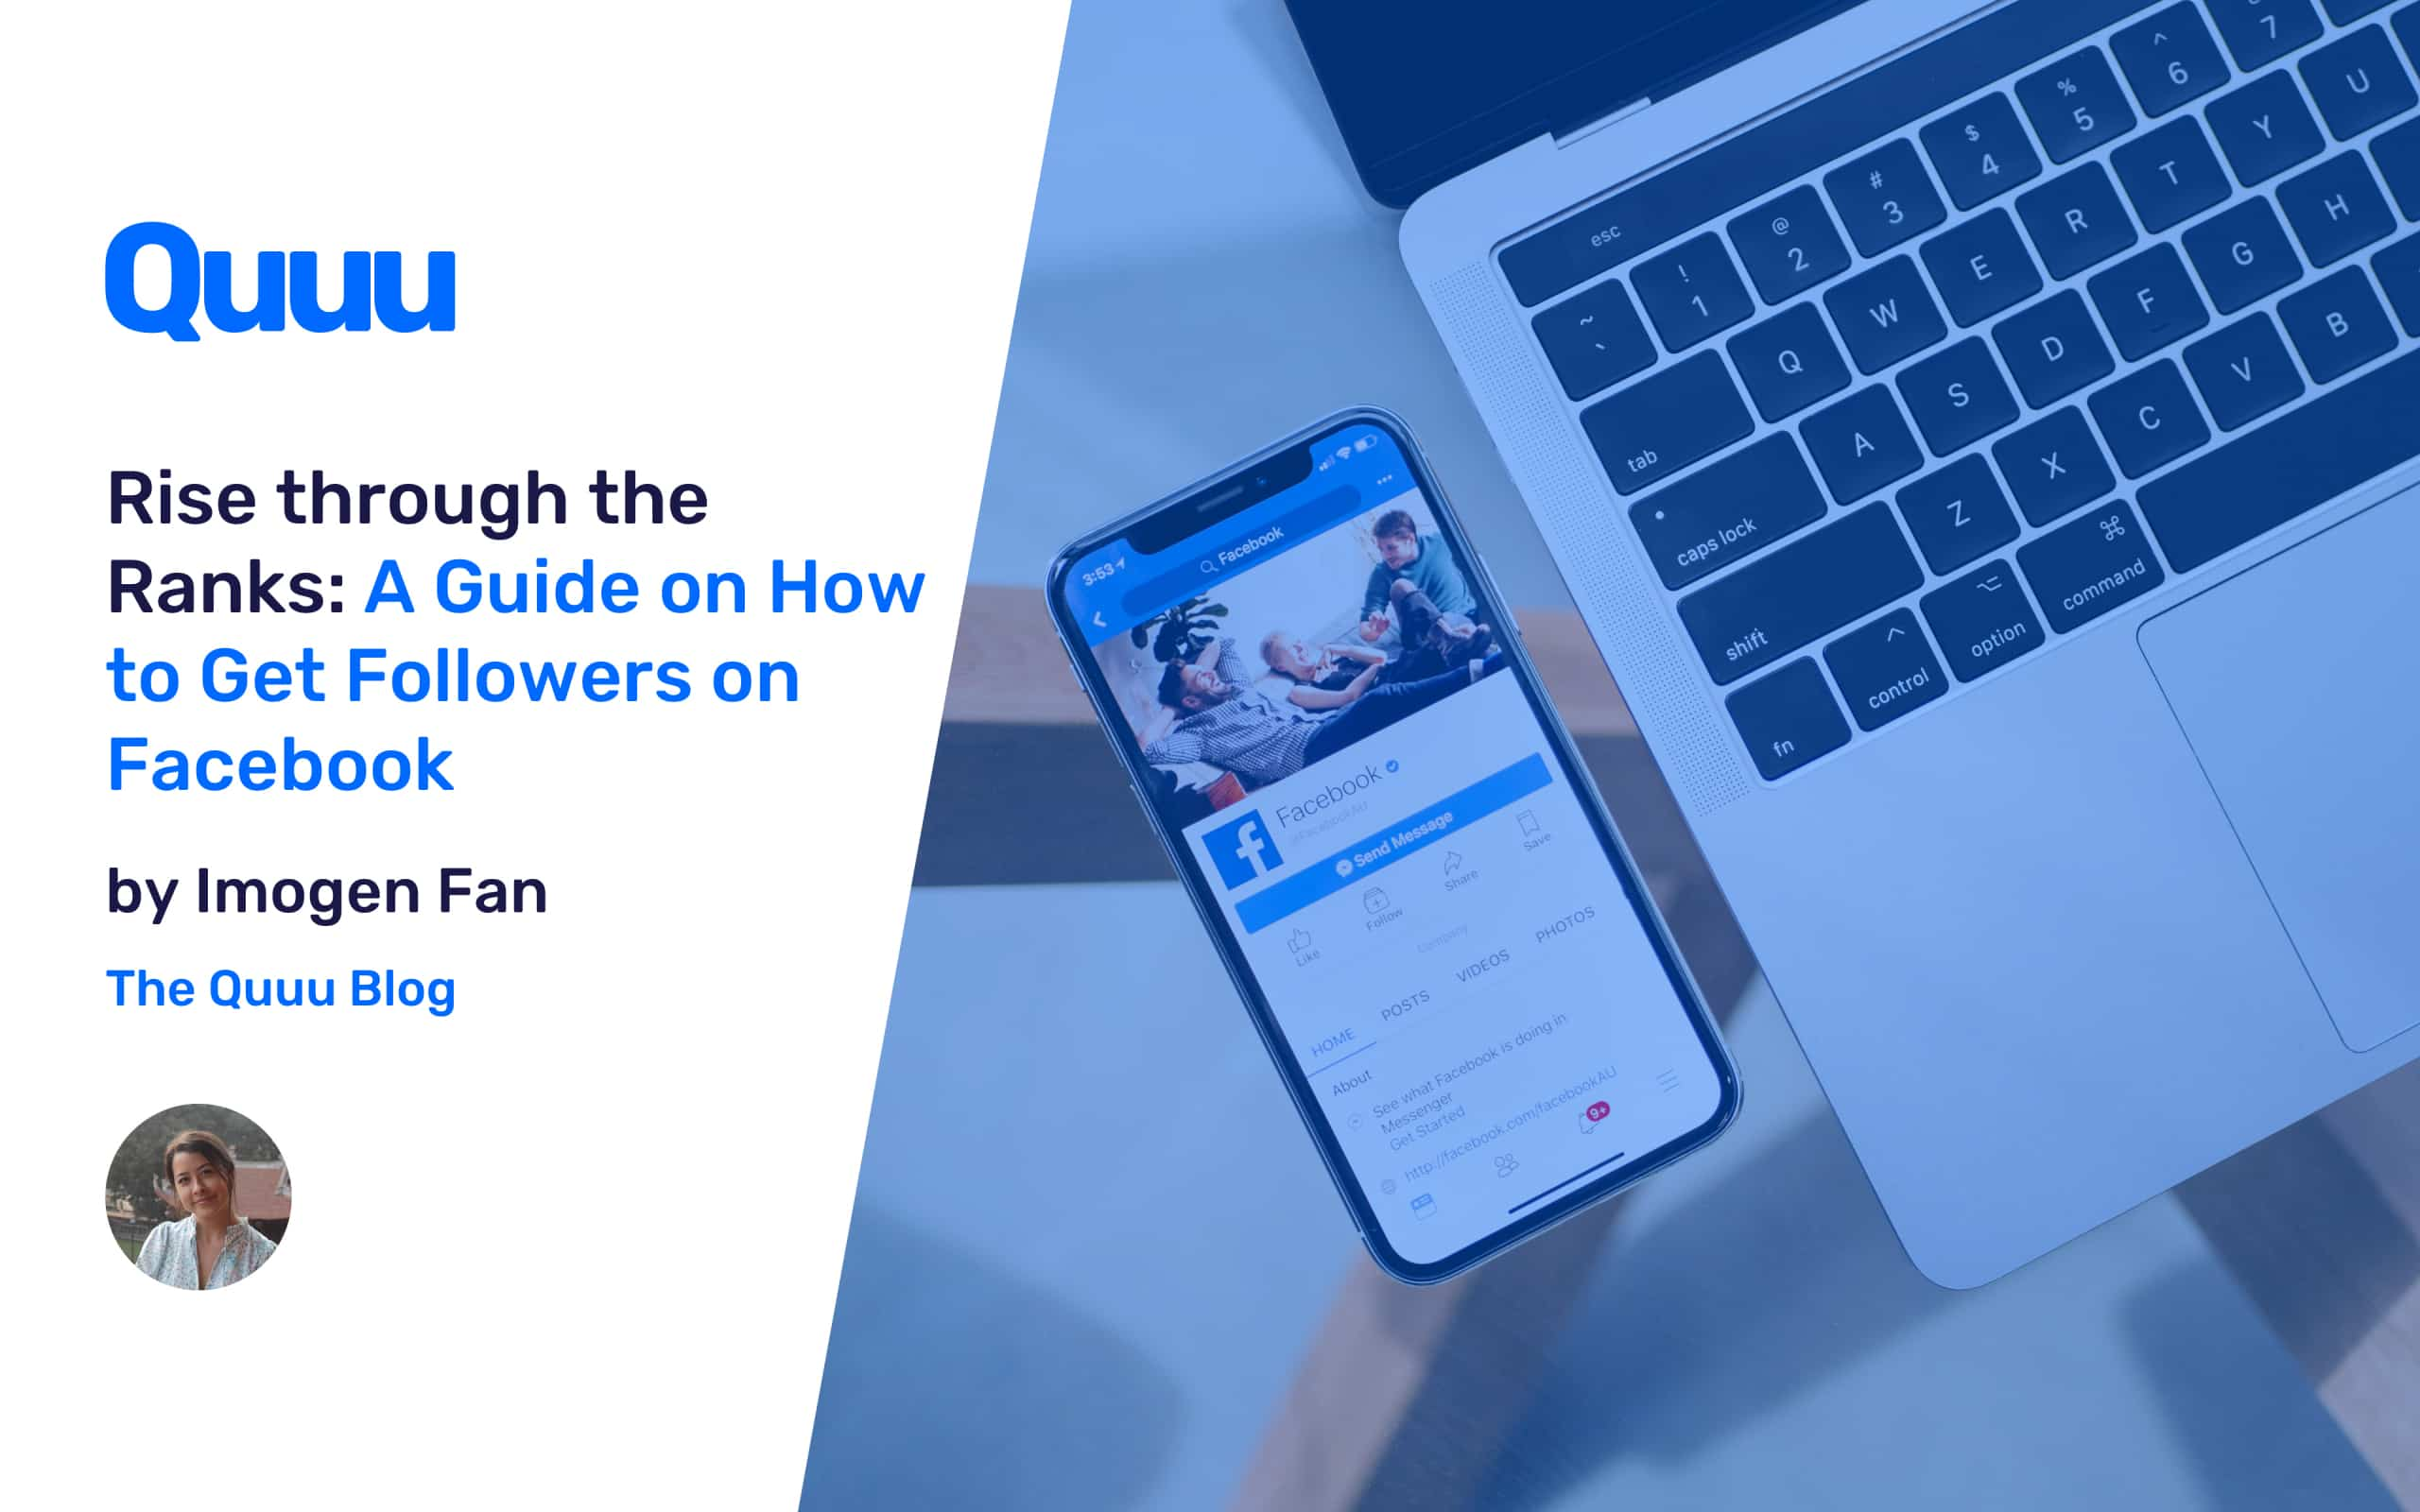 Rise through the Ranks: A Guide on How to Get Followers on Facebook